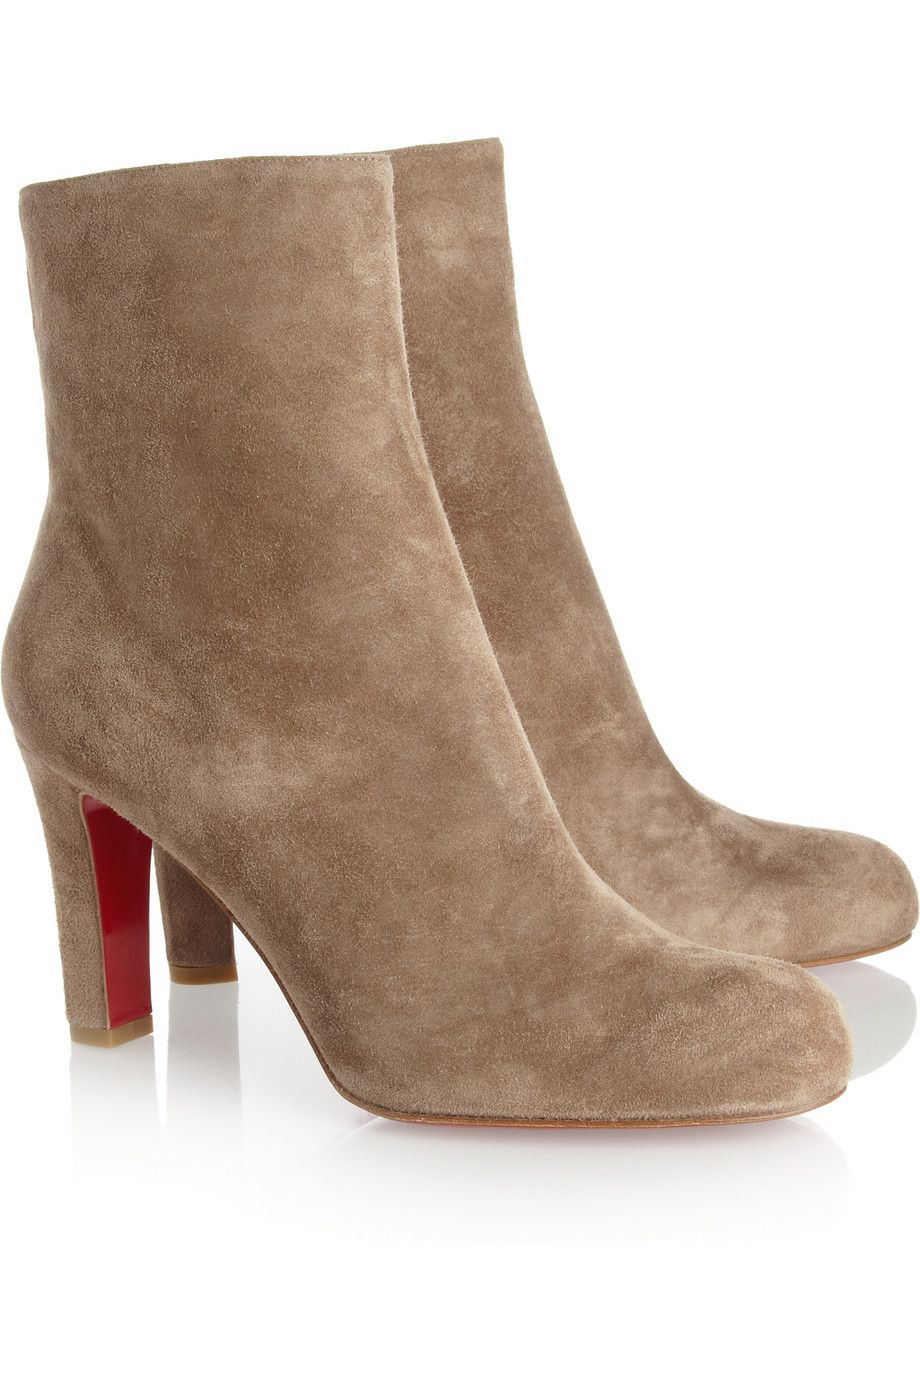 3edfb898b92 Christian Louboutin | Miss Tack 85 | My style~ | Shoes, Fashion, Boots